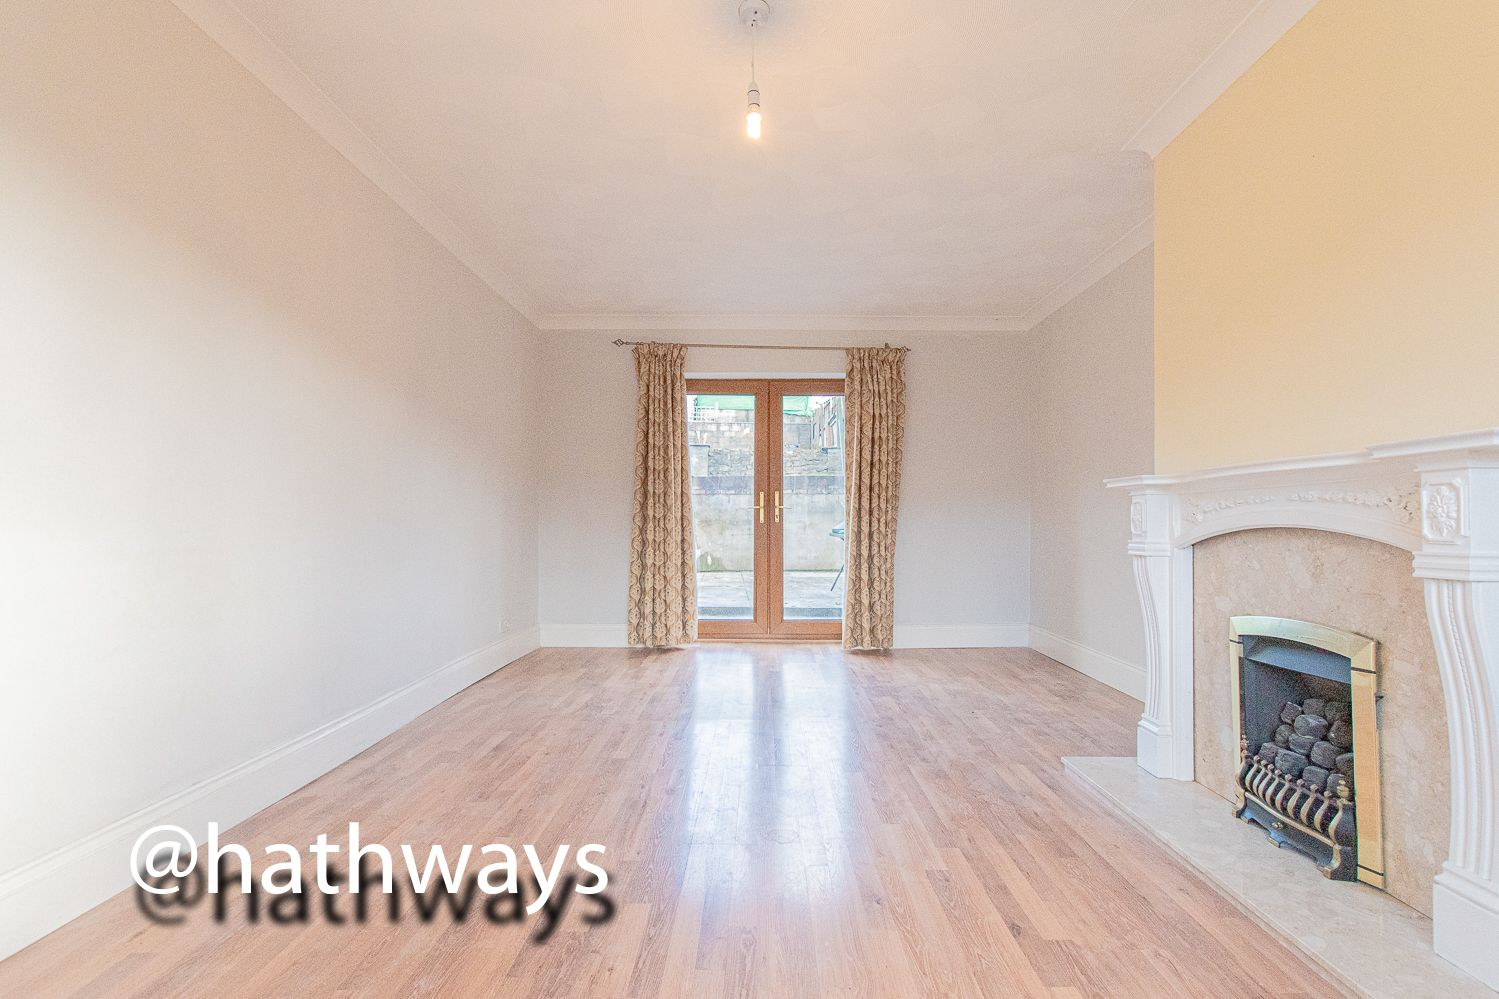 3 bed house for sale in Manor Road  - Property Image 10